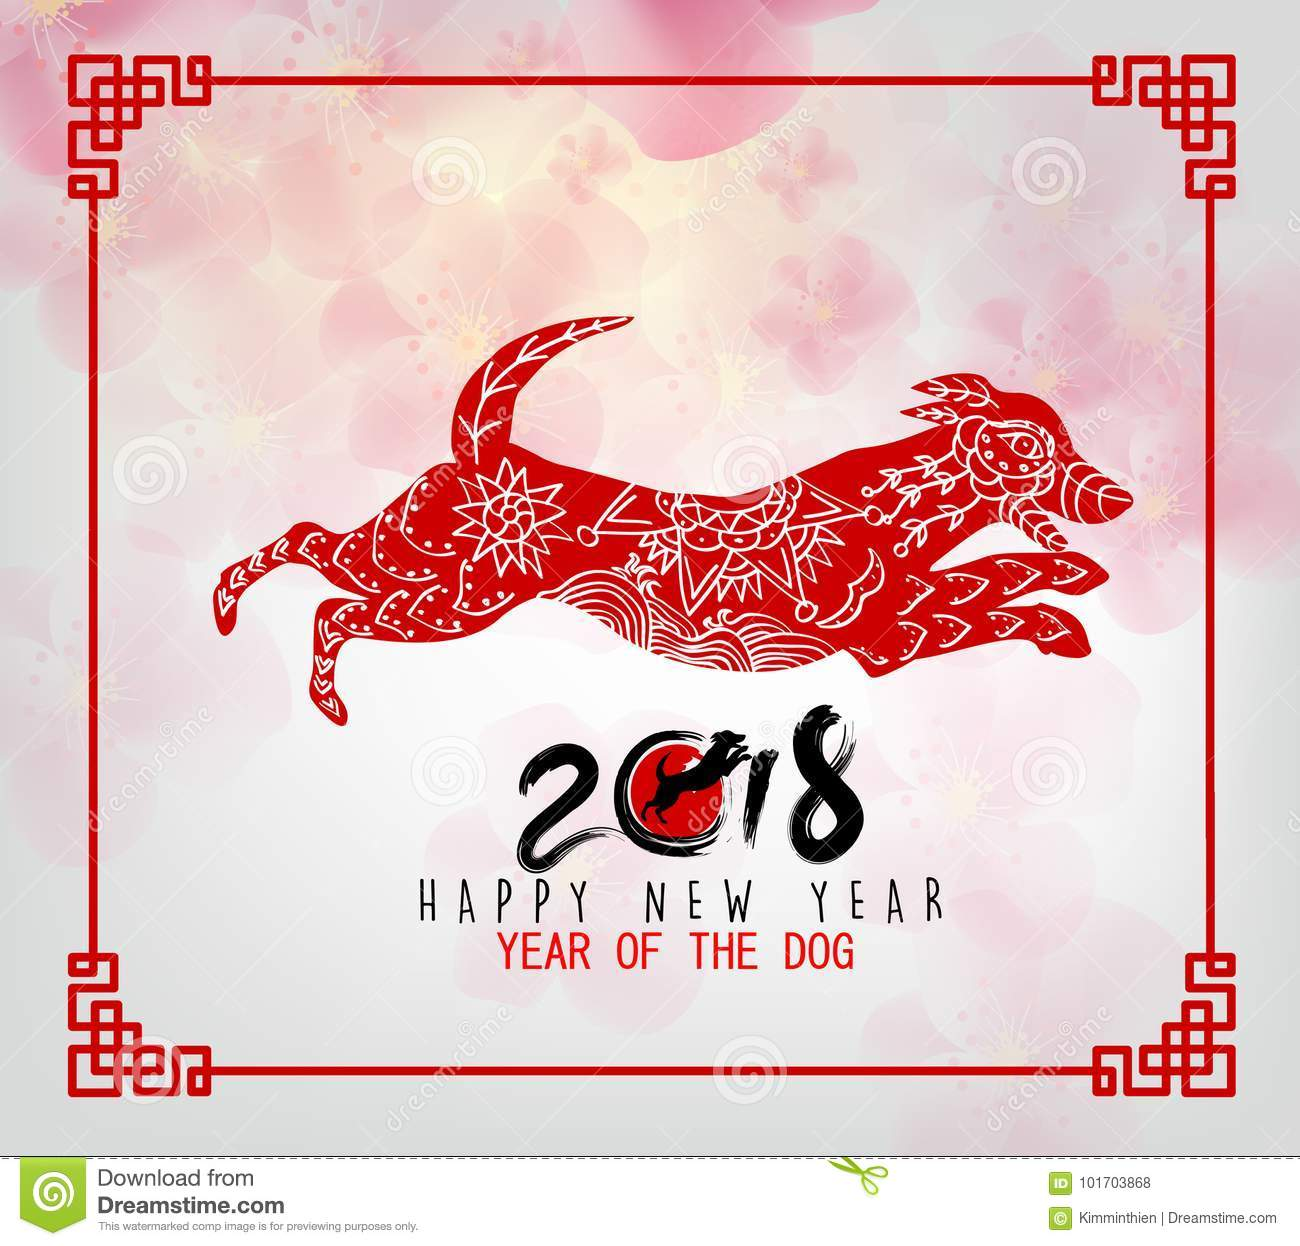 happy new year 2018 greeting card chinese new year of ther dog and blossom background